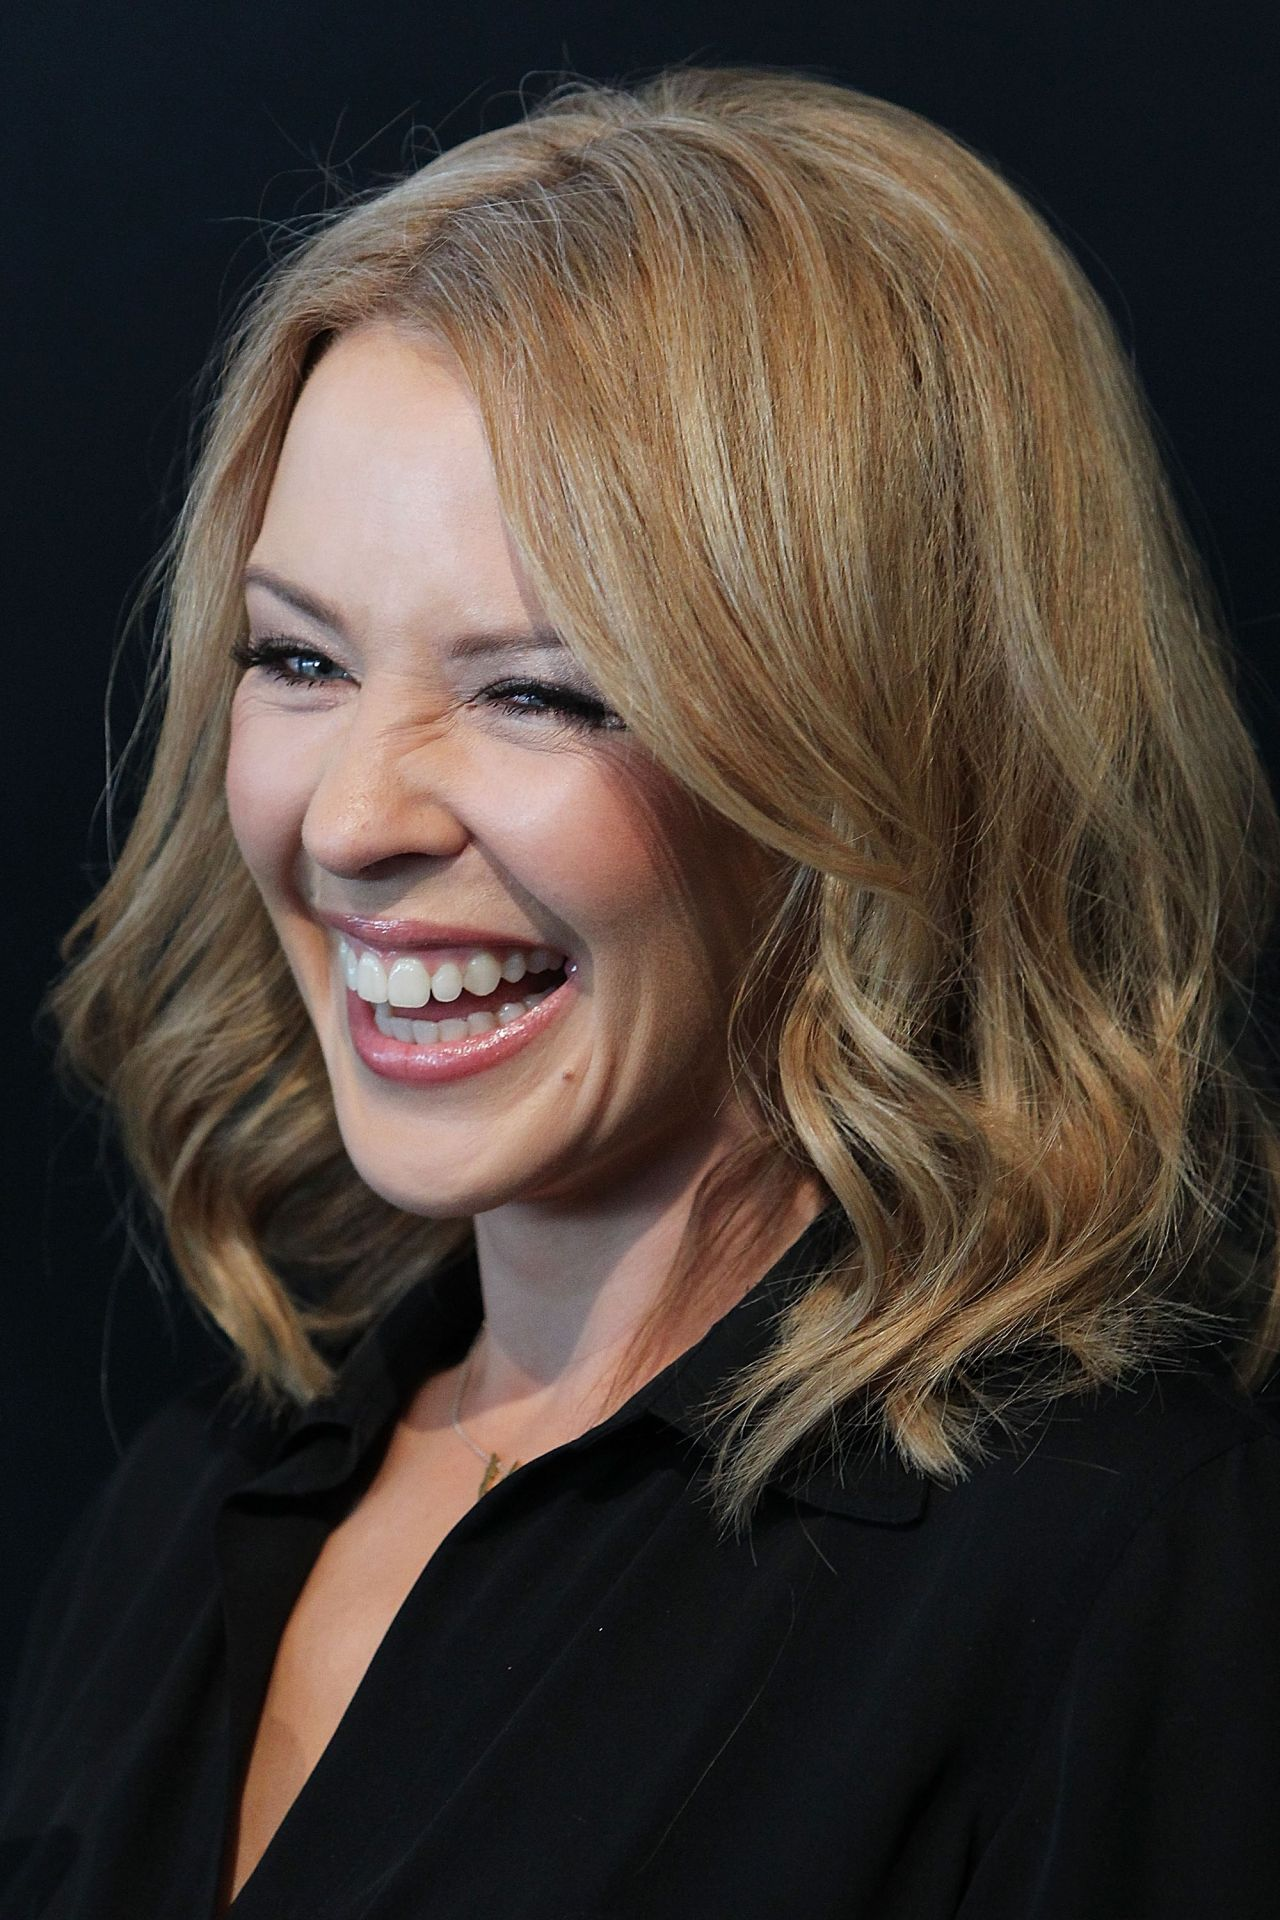 kylie minogue - photo #38